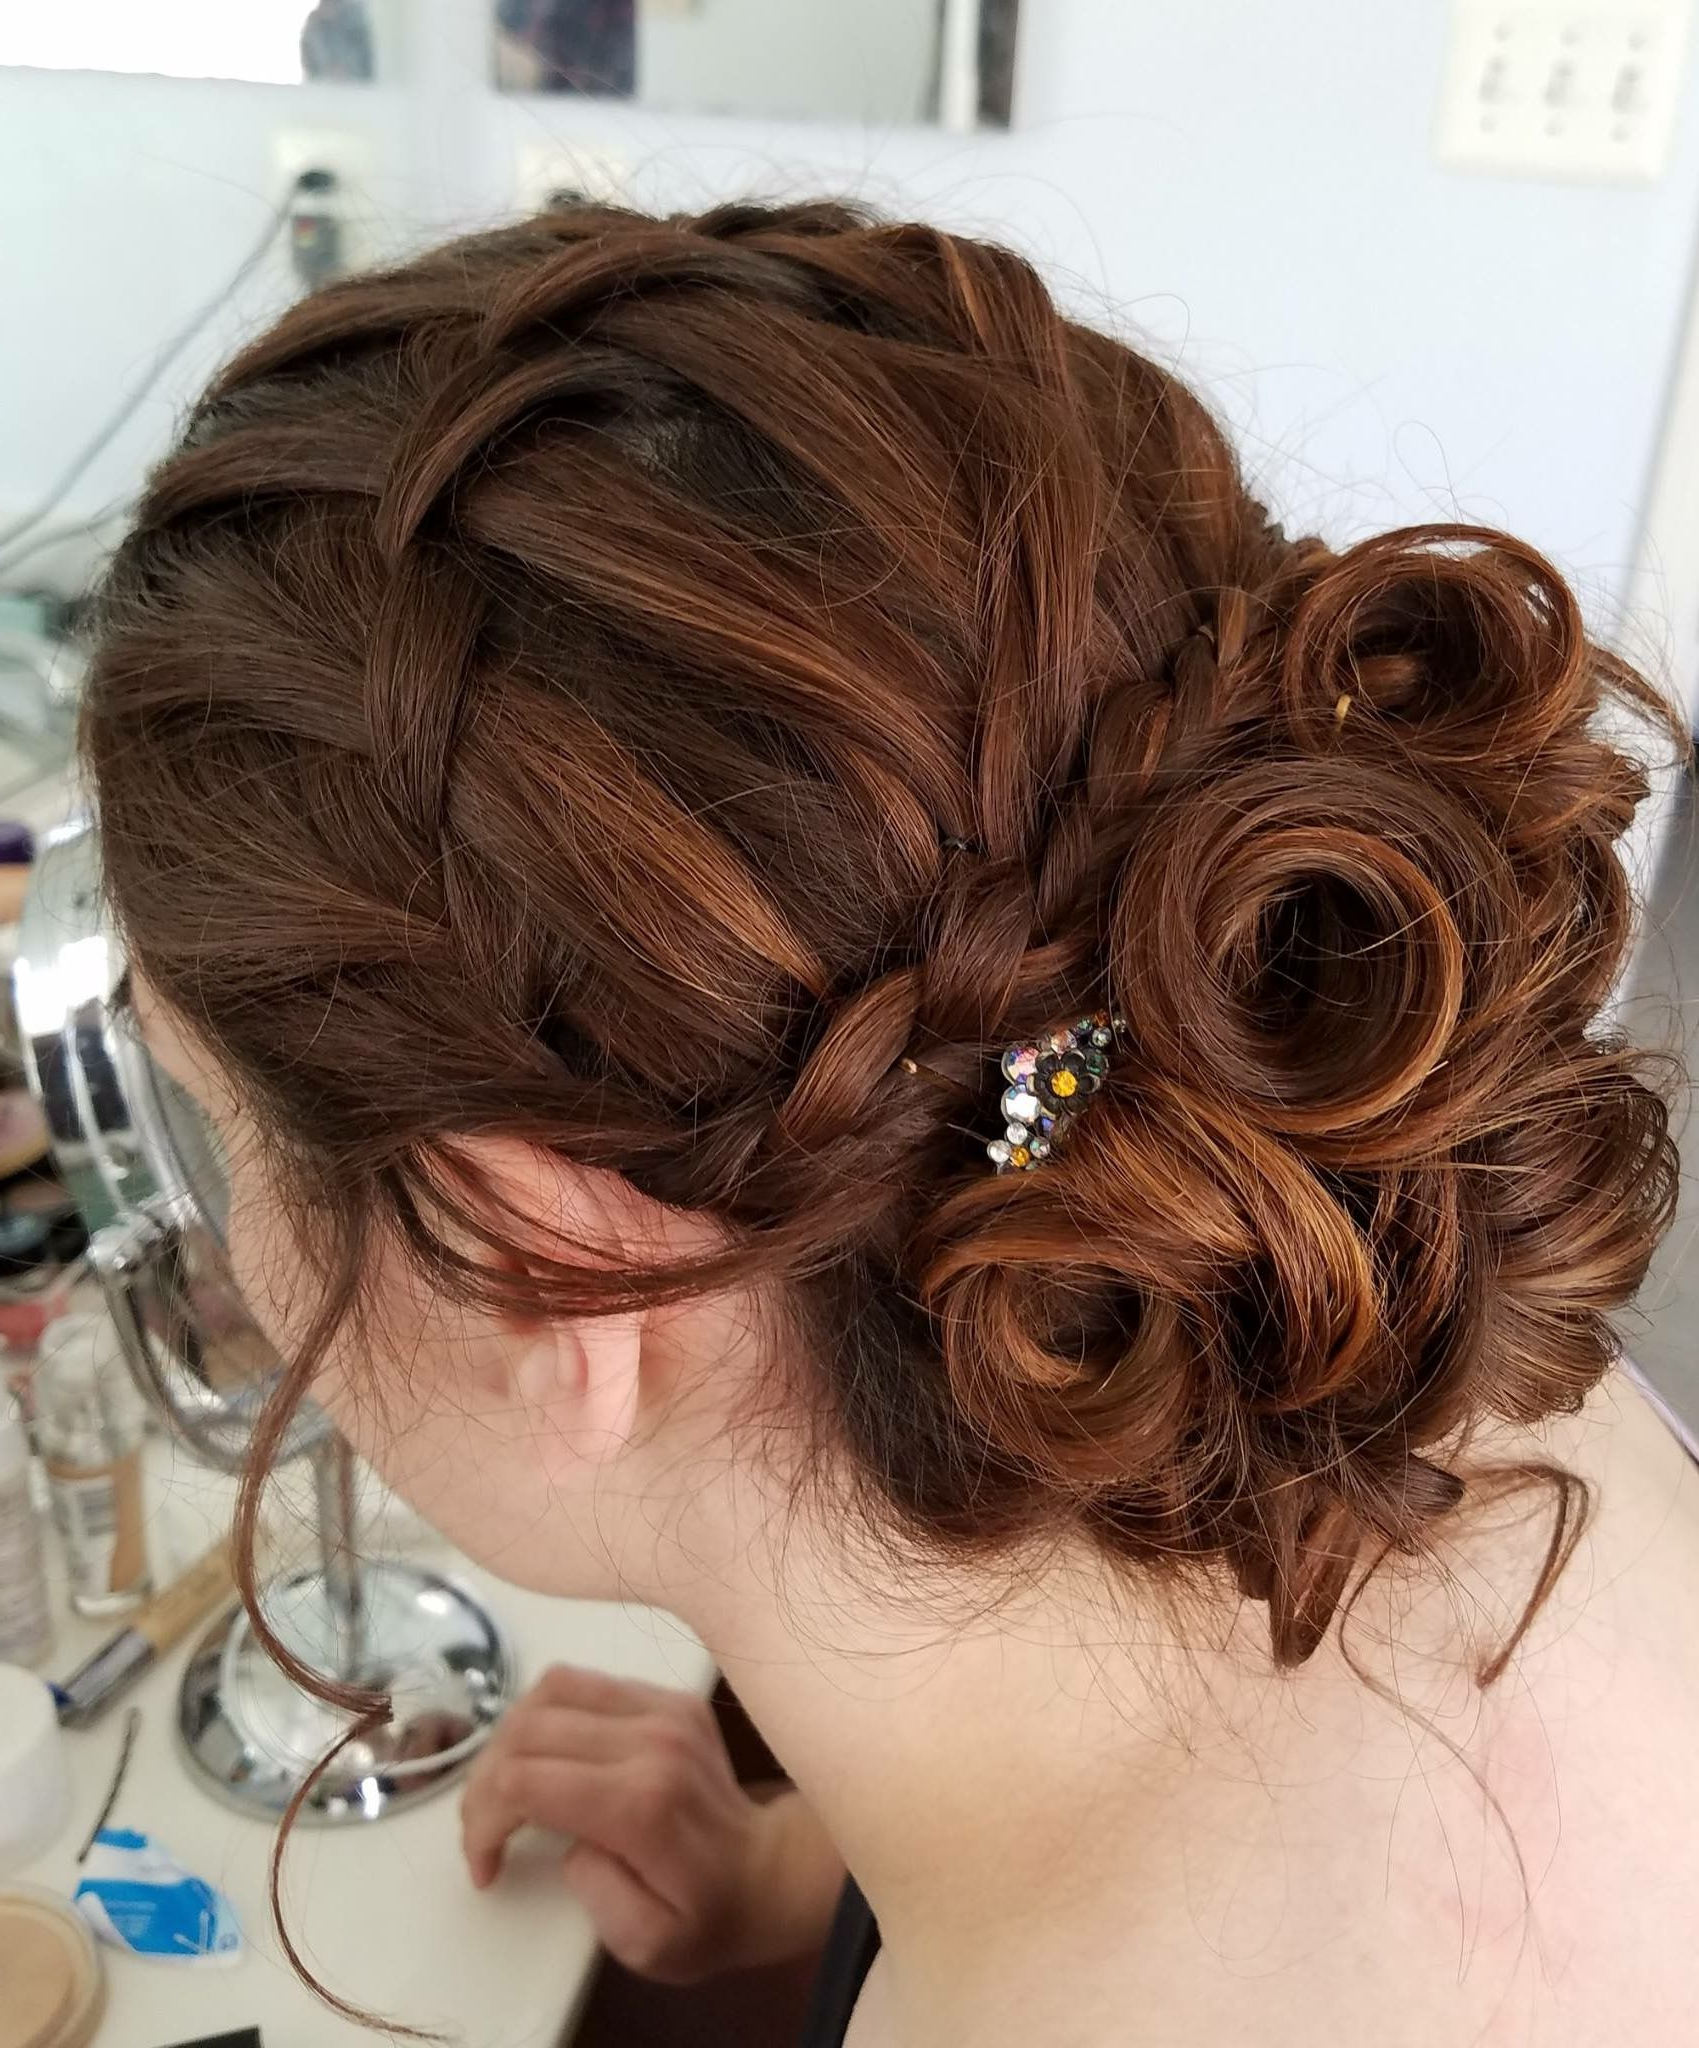 Well Liked Messy Twisted Chignon Prom Hairstyles Intended For Hairstyles : Prom Hair Low Bun Updo Pinterest And With Hairstyles (View 19 of 20)